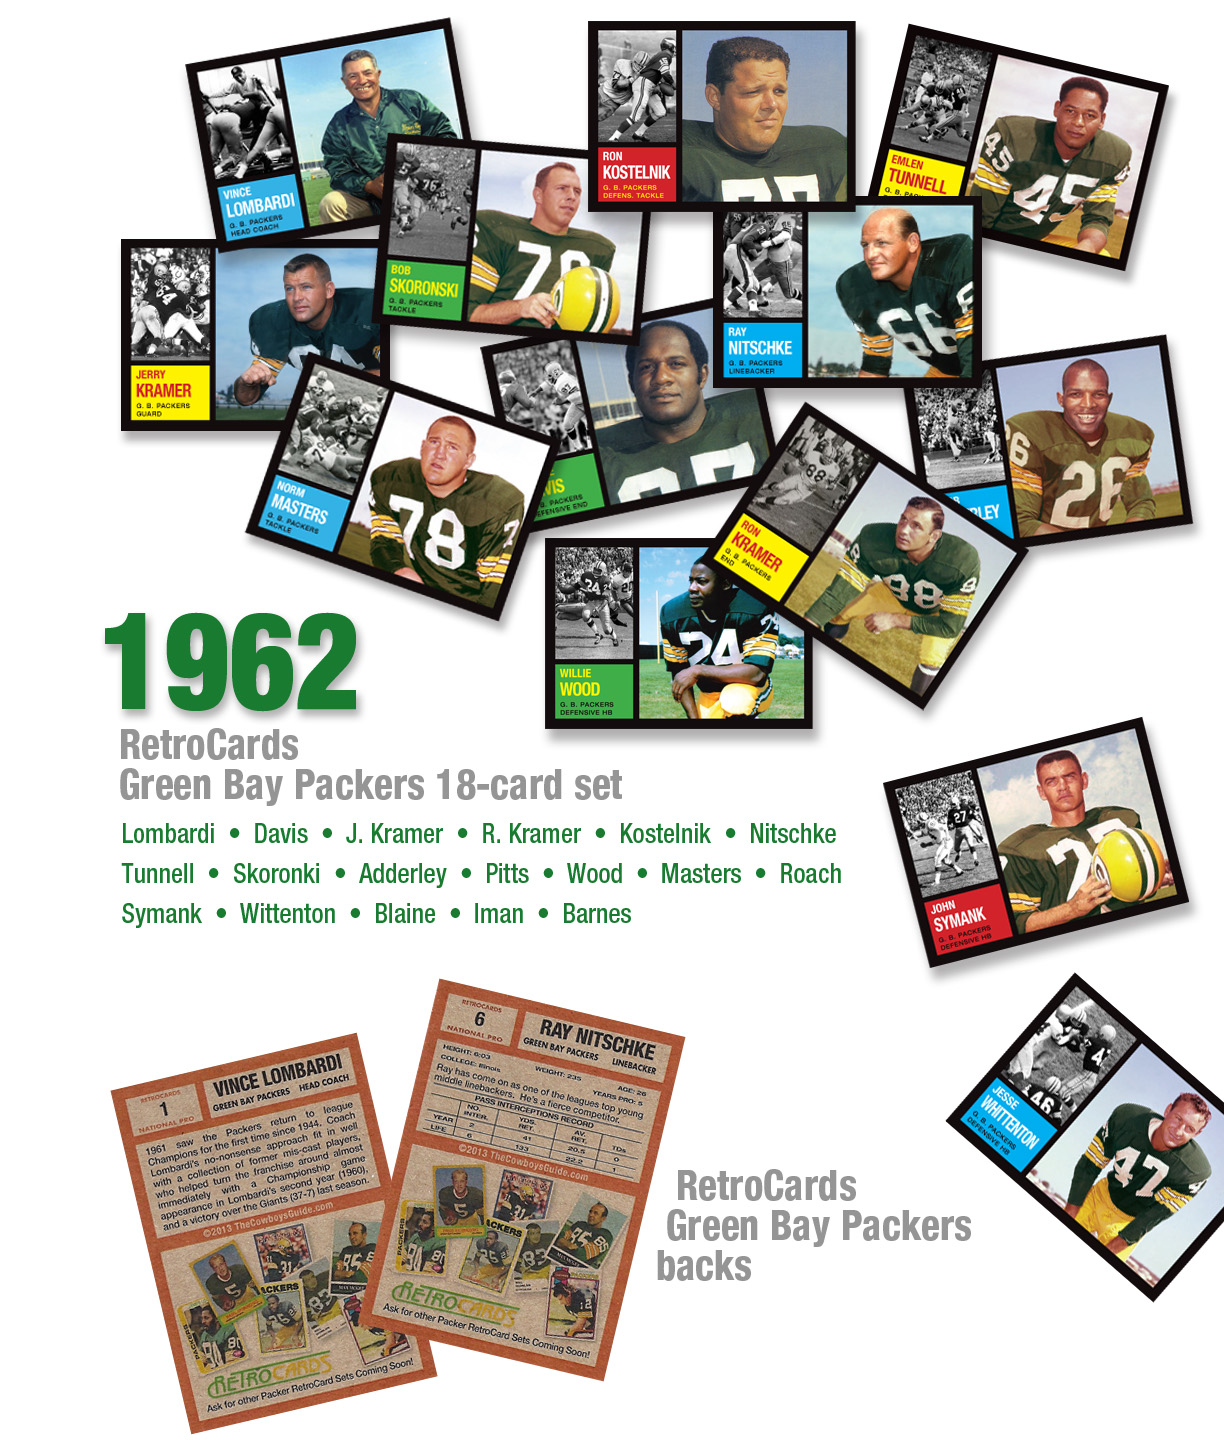 "1962 Topps RetroCards Willie Davis Lombardi Kramer Ron Jerry Adderley Wood Skoronski Symank Kostelnik nitschke tunnell pitts wood master roach wittenton blaine iman barnes custom retro cards ""cards that never were"""